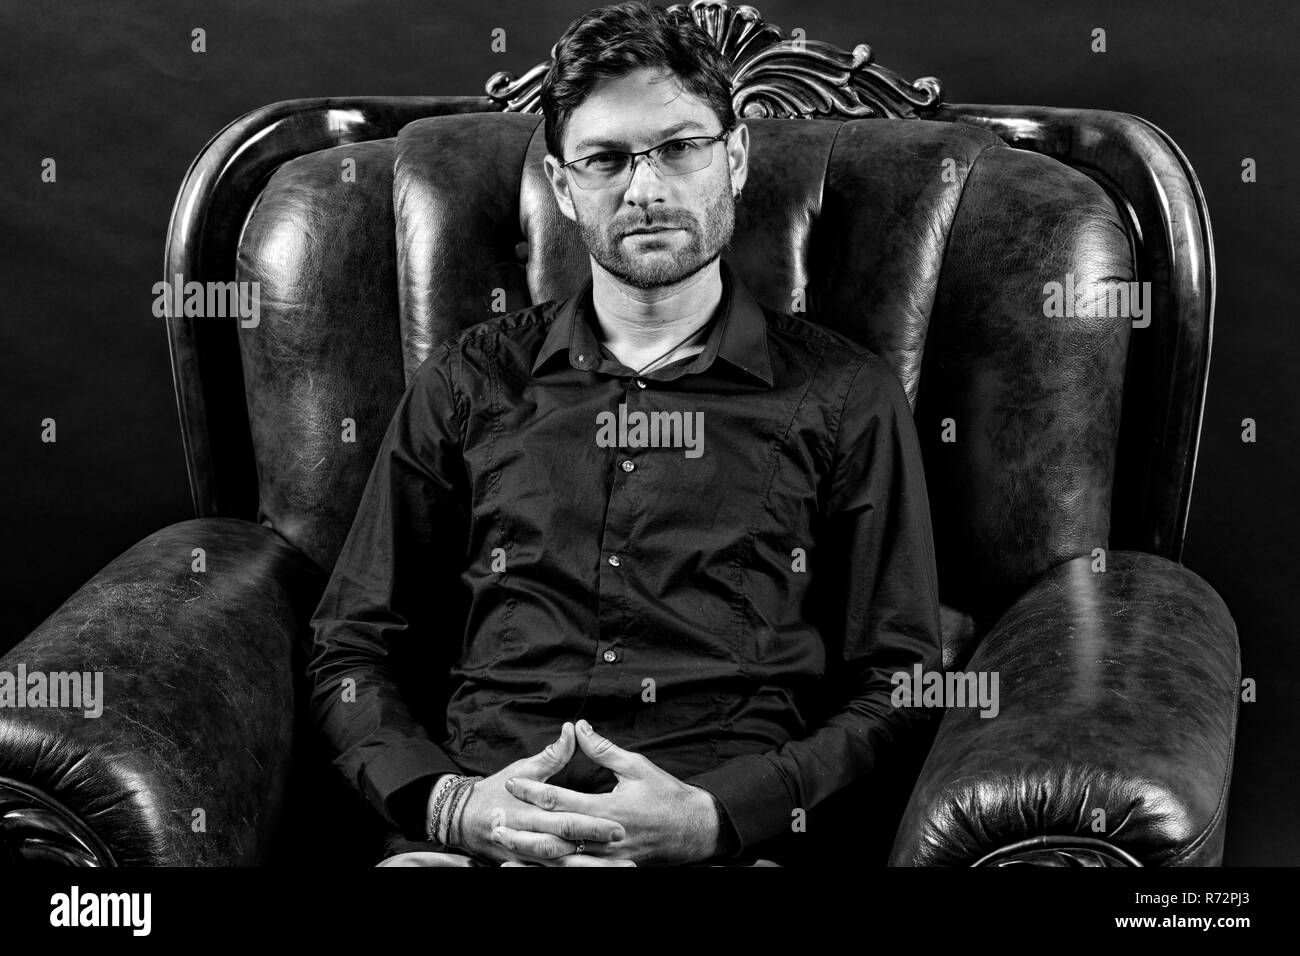 Bearded man relax in leather armchair. Man with beard on unshaven face. Macho wear shirt and glasses. Barber salon and skincare. Fashion accessory and furniture, black and white. - Stock Image